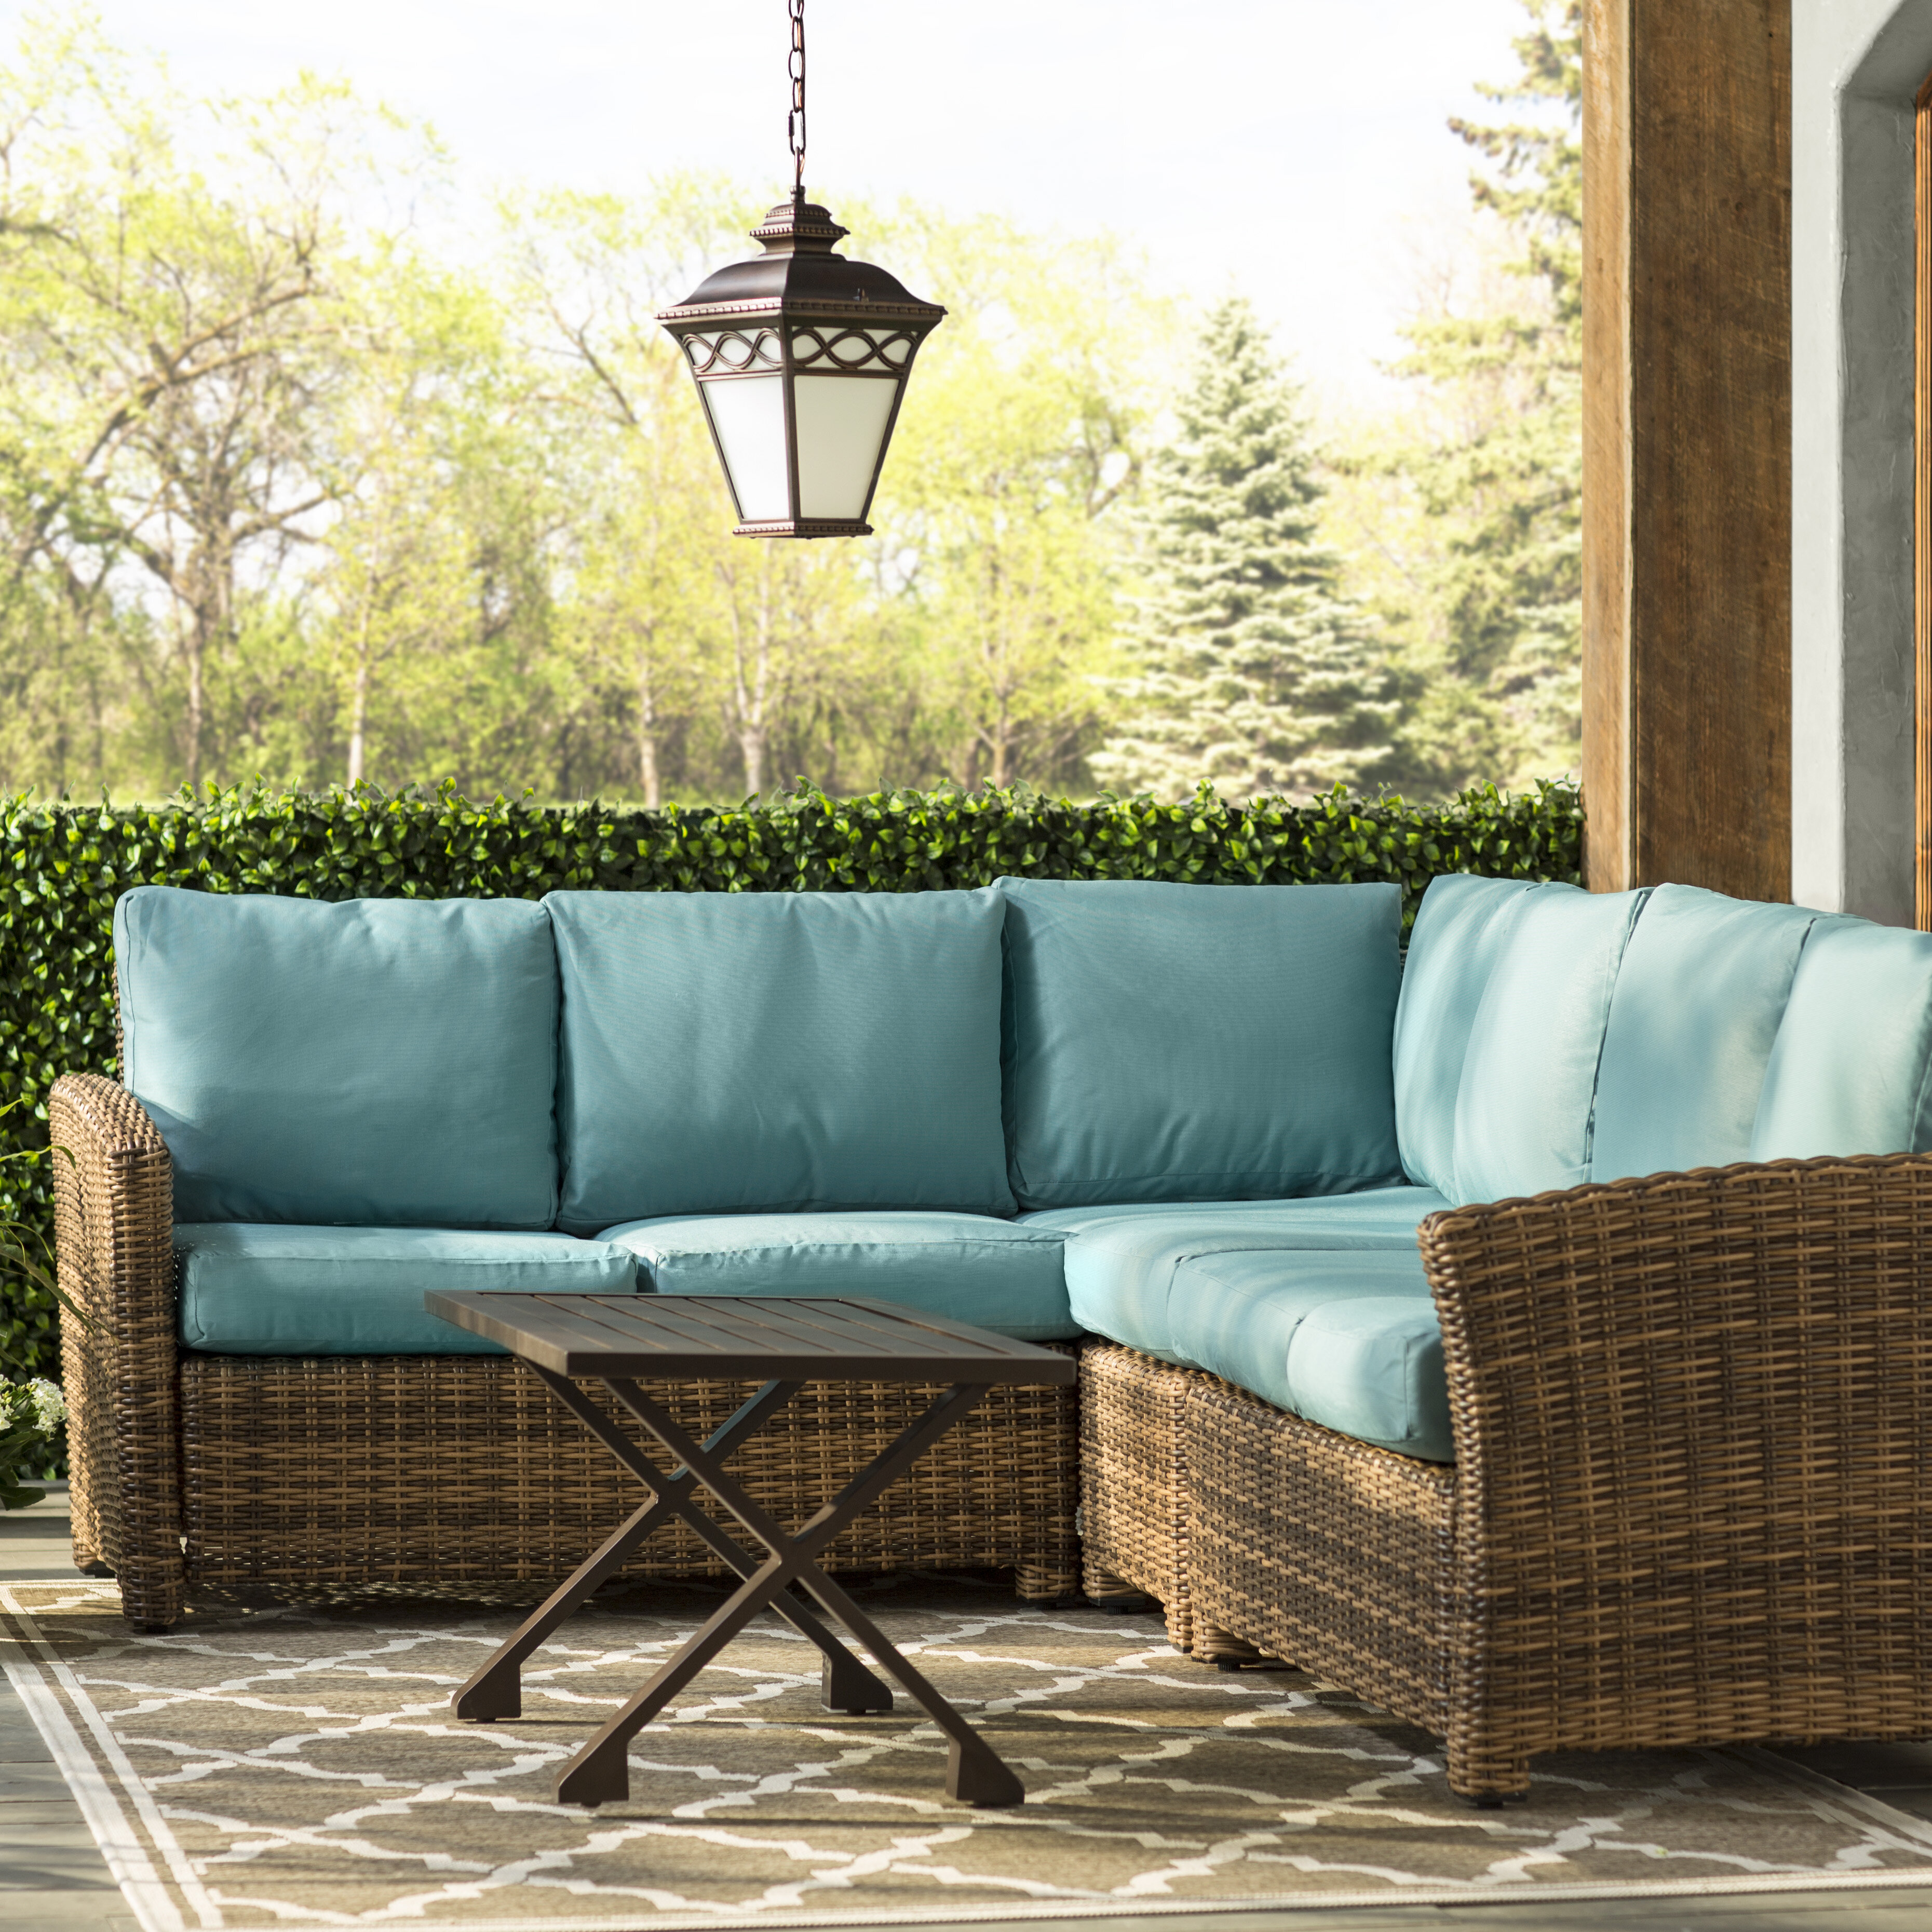 Darby Home Co Coast 11 Piece Rattan Sectional Seating